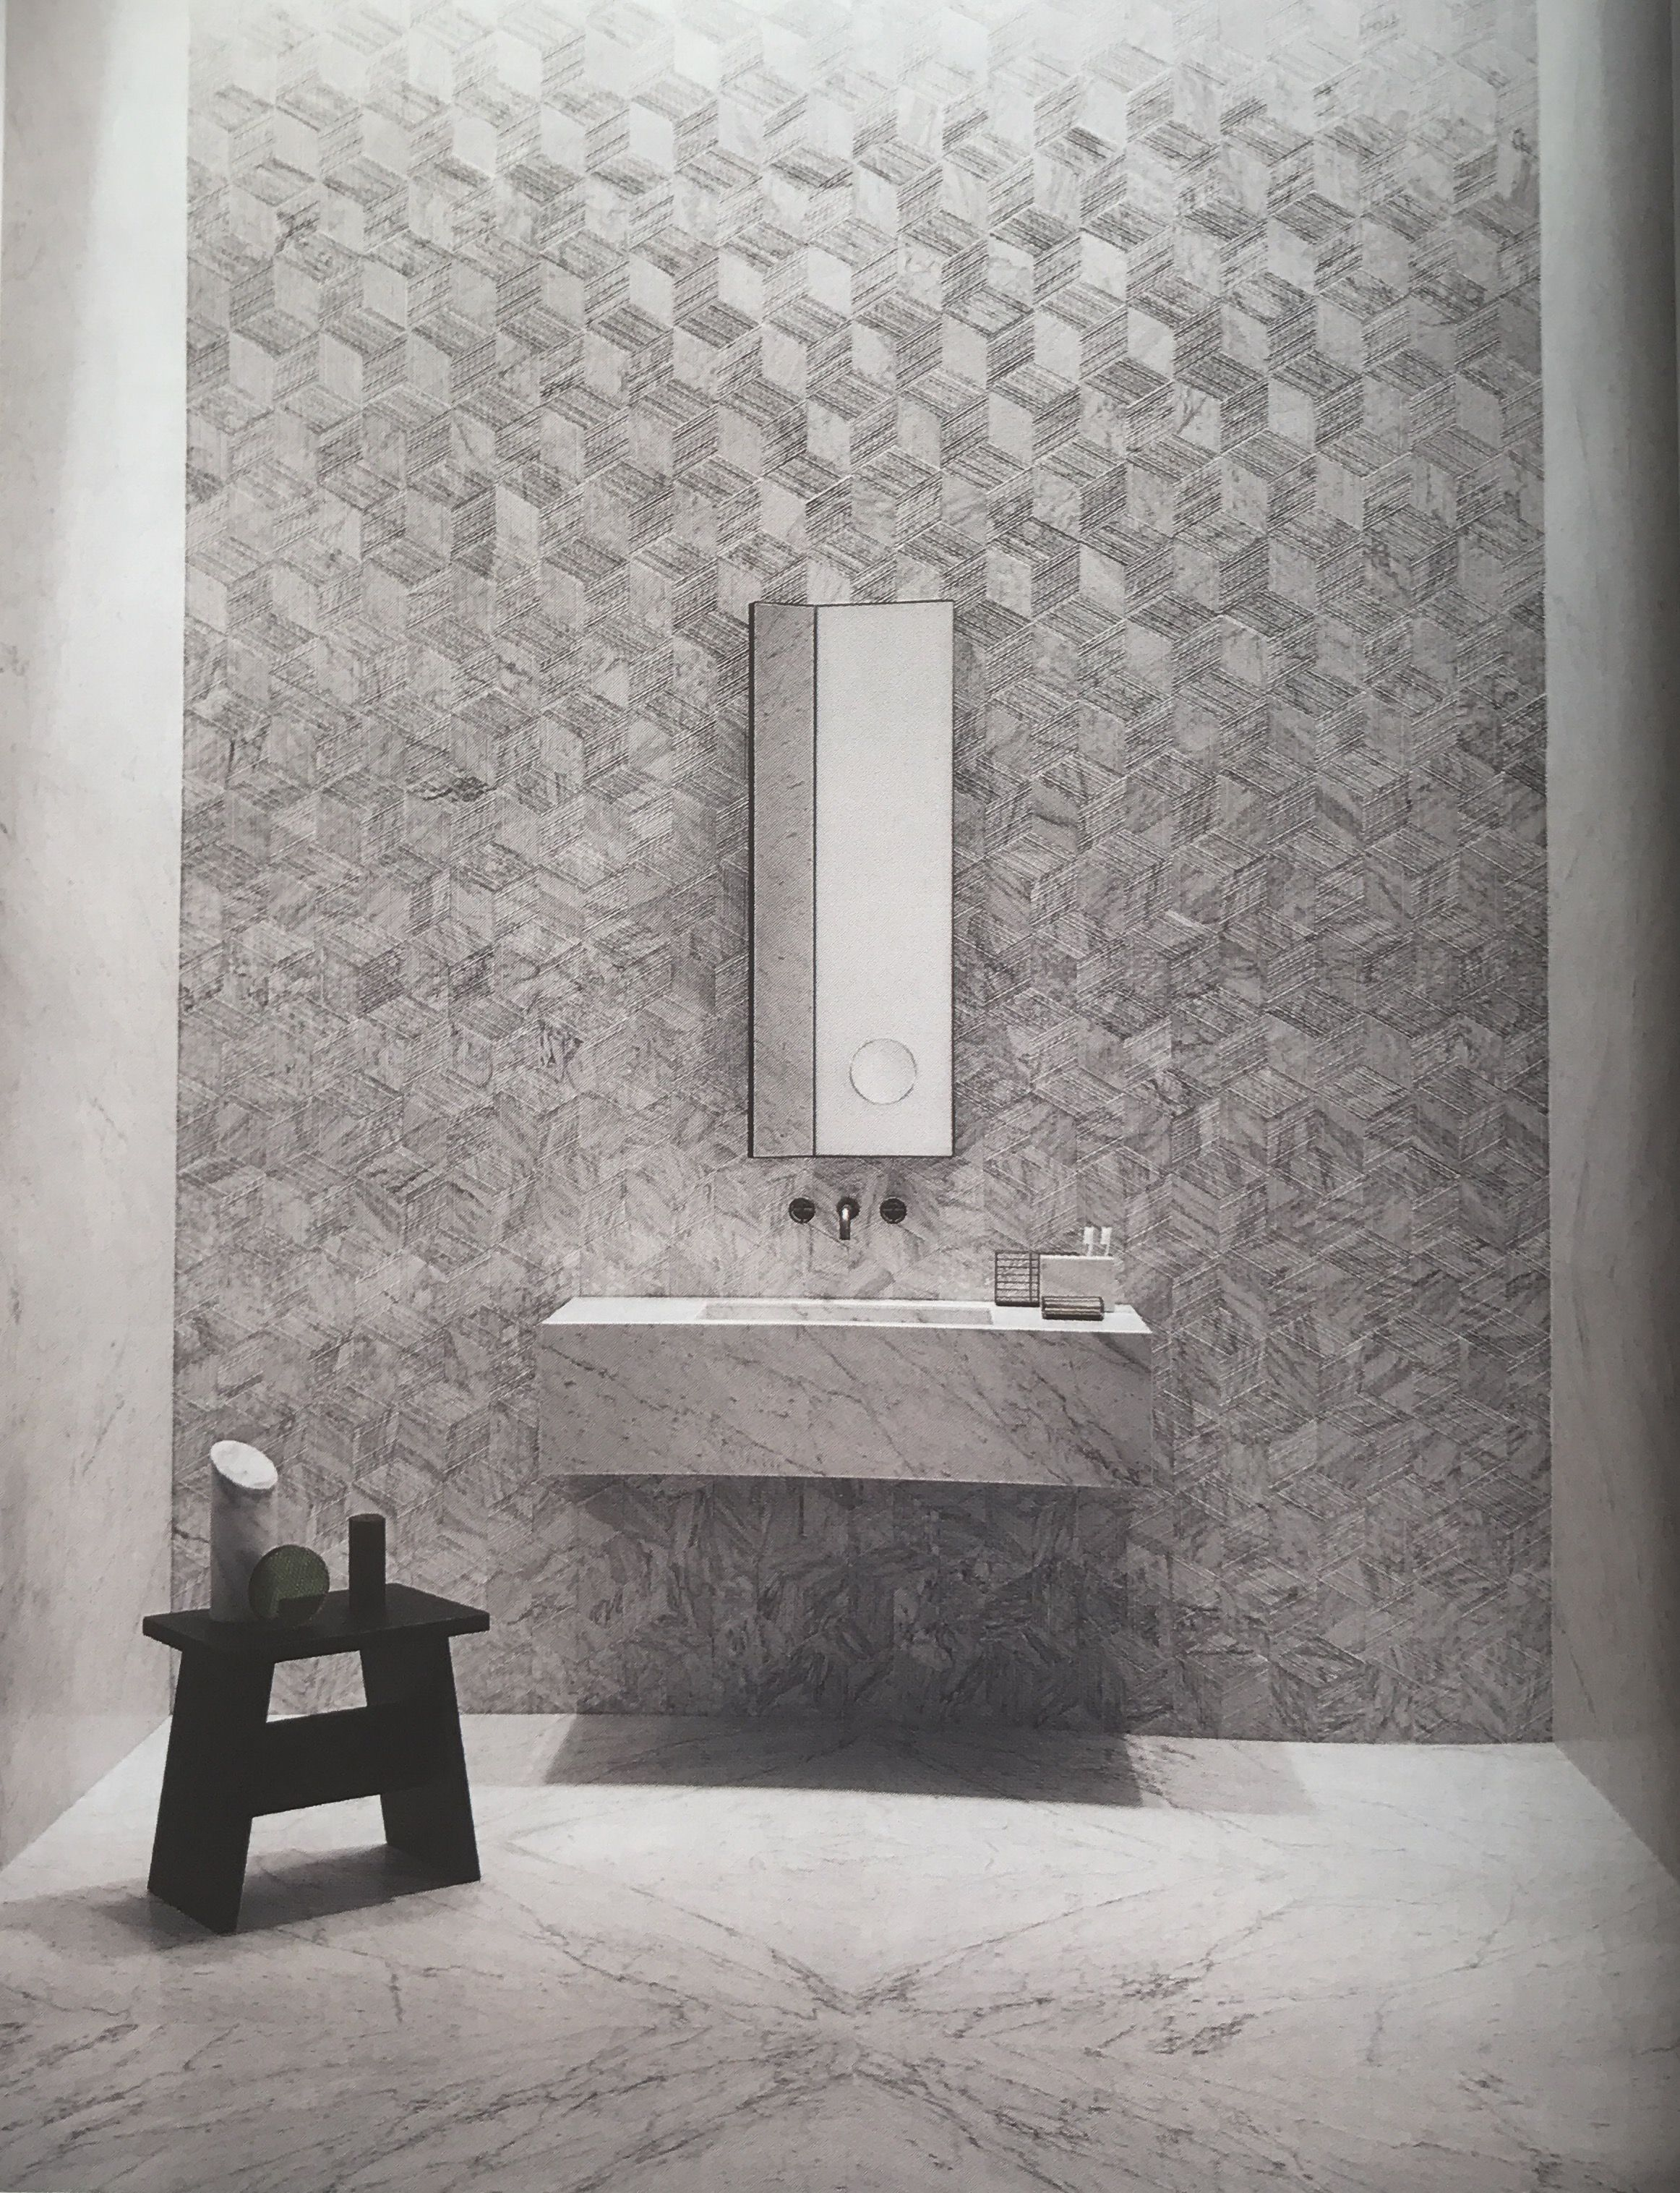 Salvatori Natural Stone Natural Stone Bathroom Natural Stone Flooring Natural Stone Wall